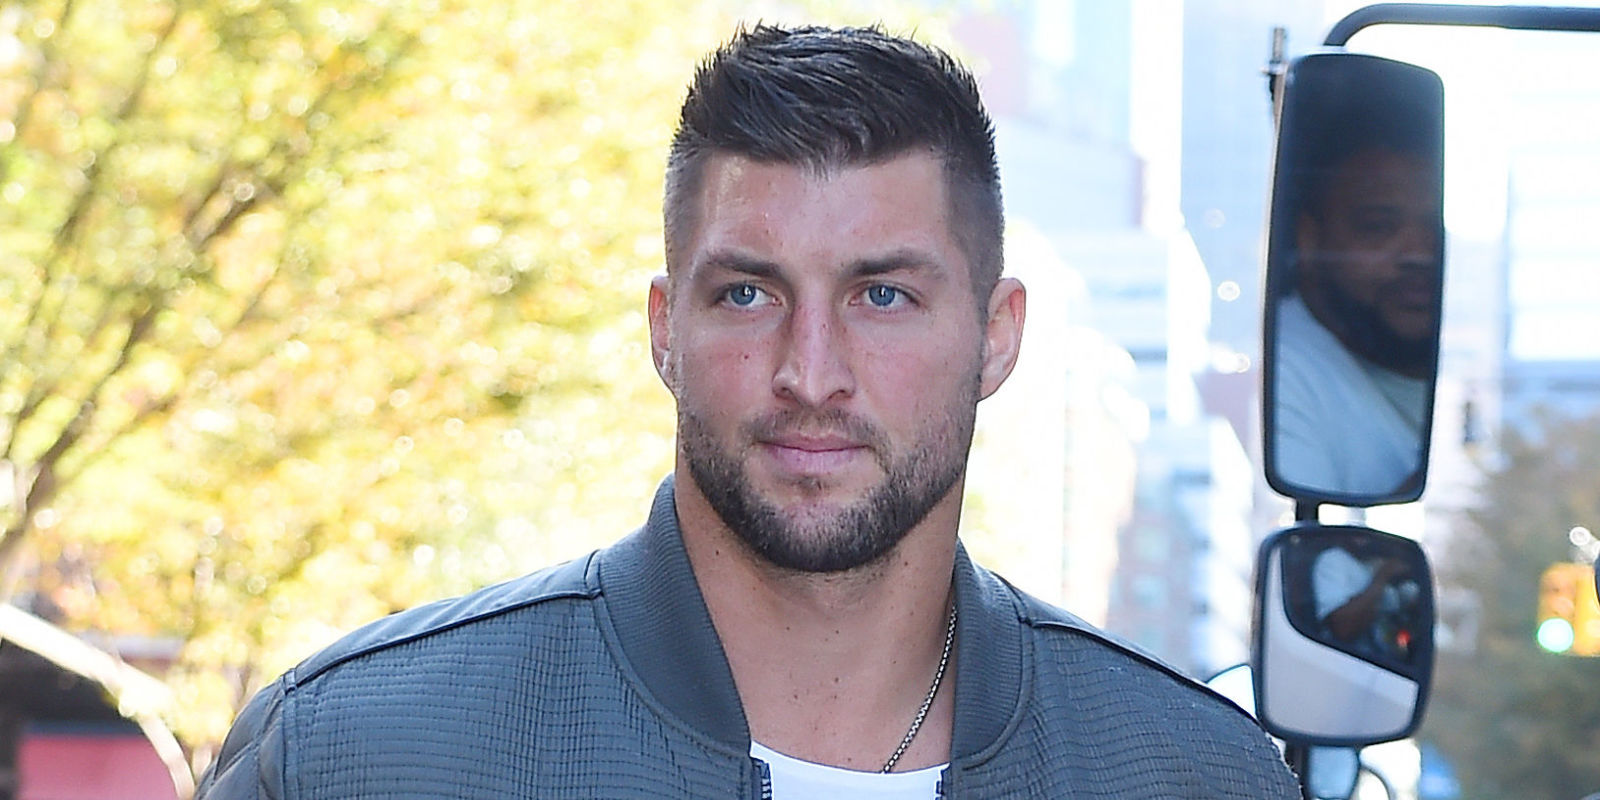 Tim tebow friar tuck haircut